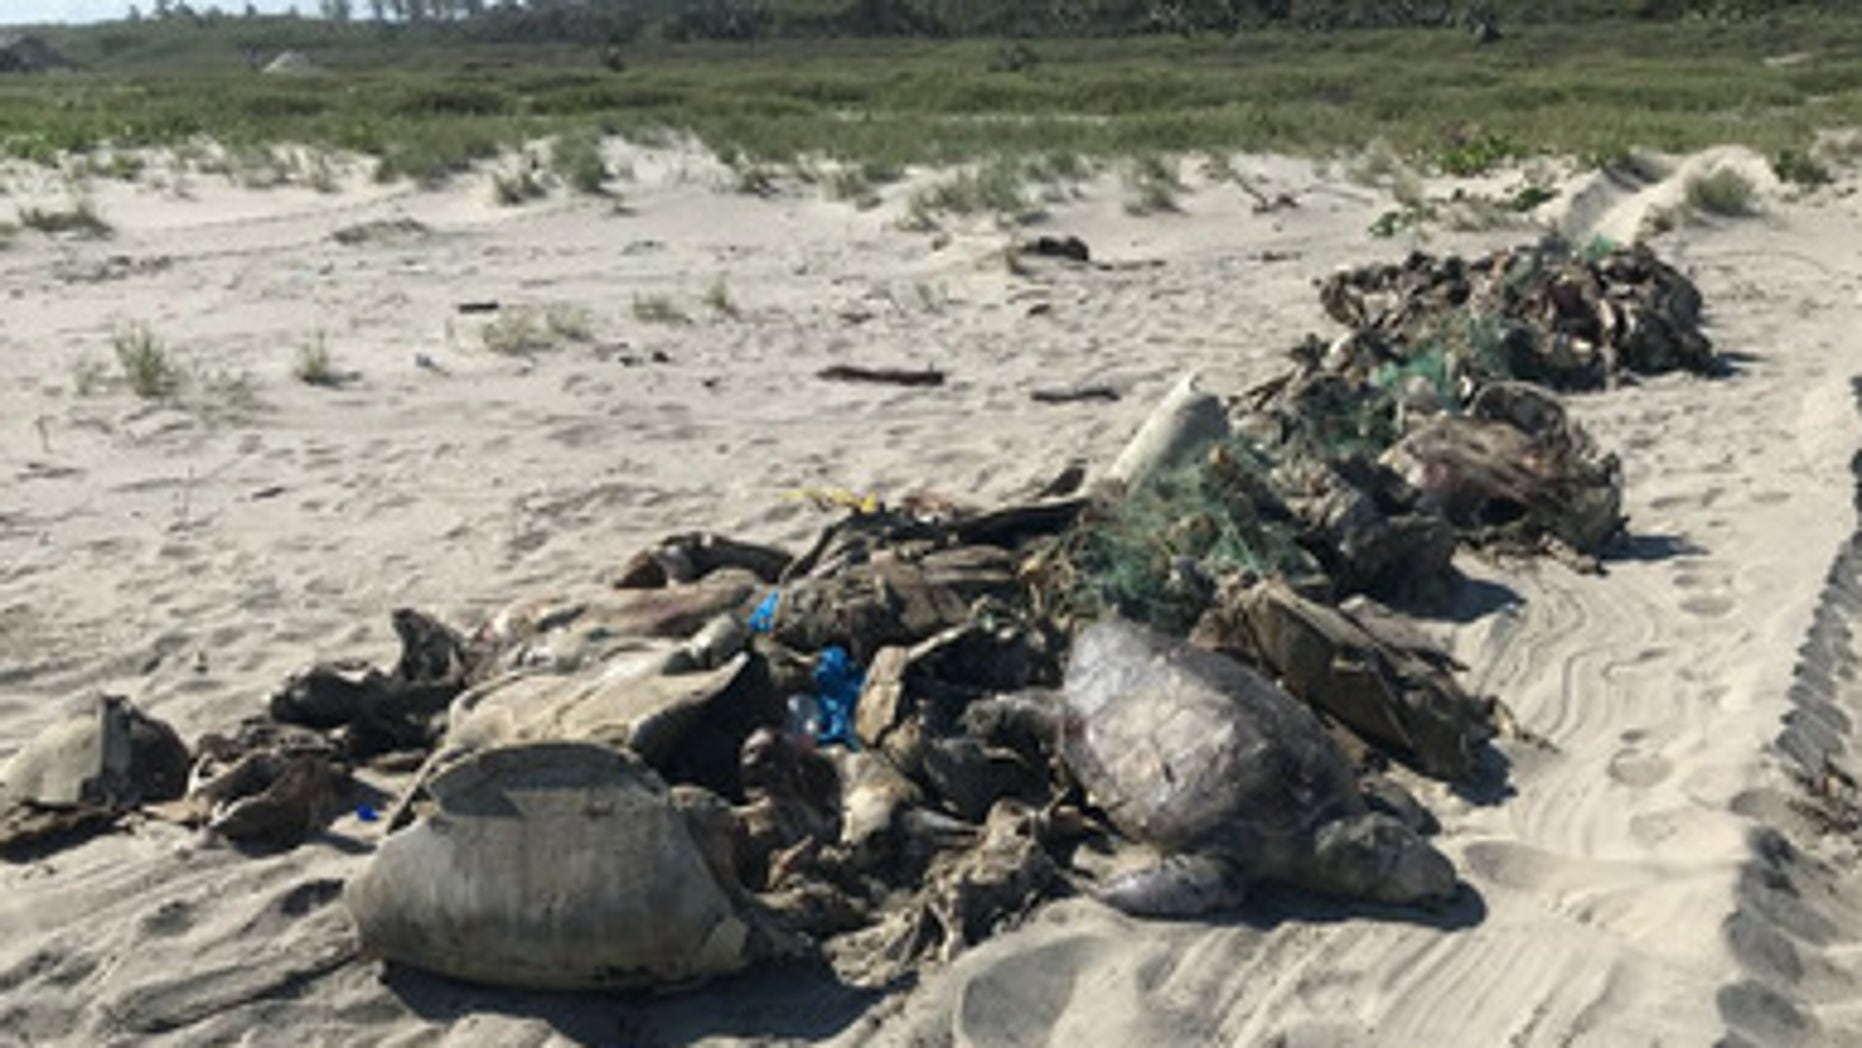 The turtle carcasses were brought ashore and buried in two pits (PROFEPA)